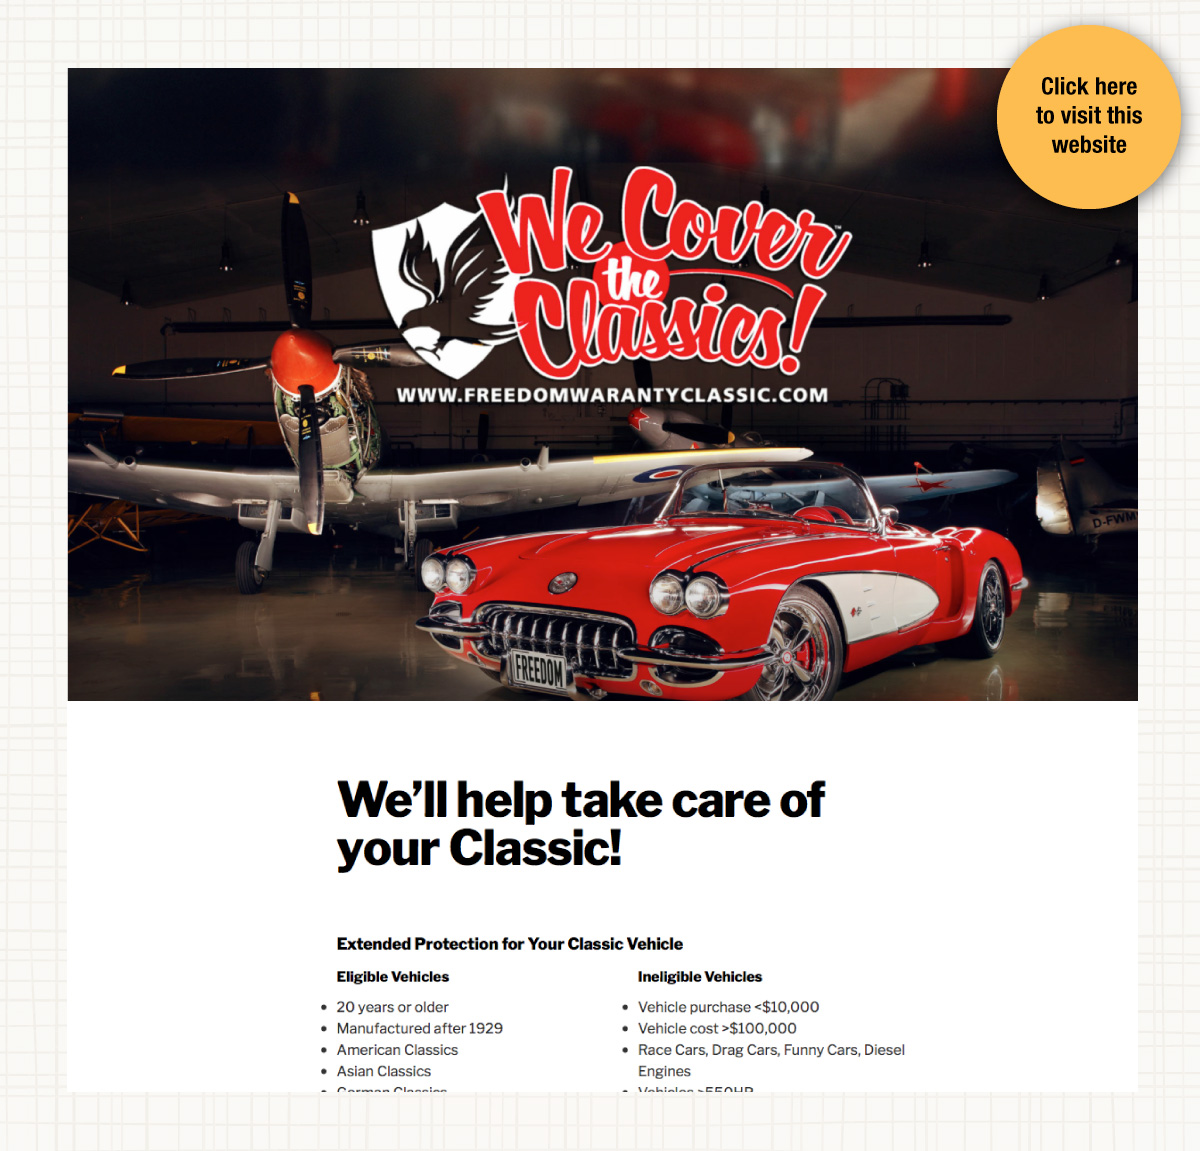 Website for Freedom Warranty Classic